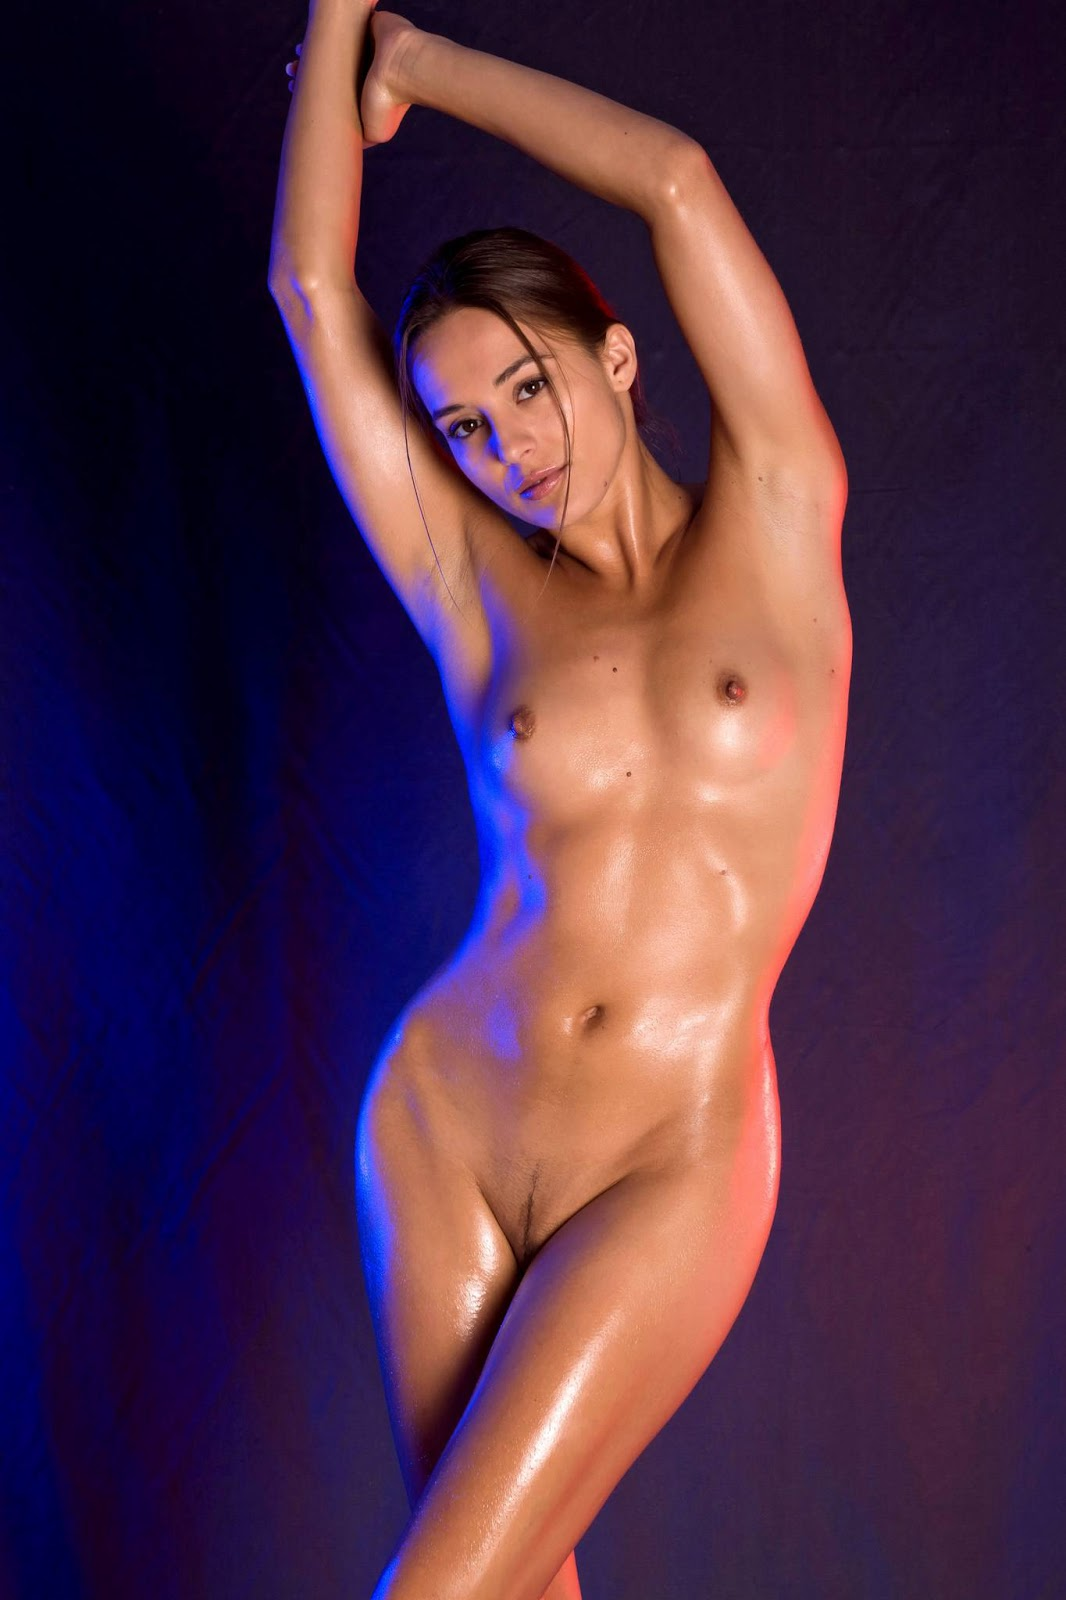 real nude women sex